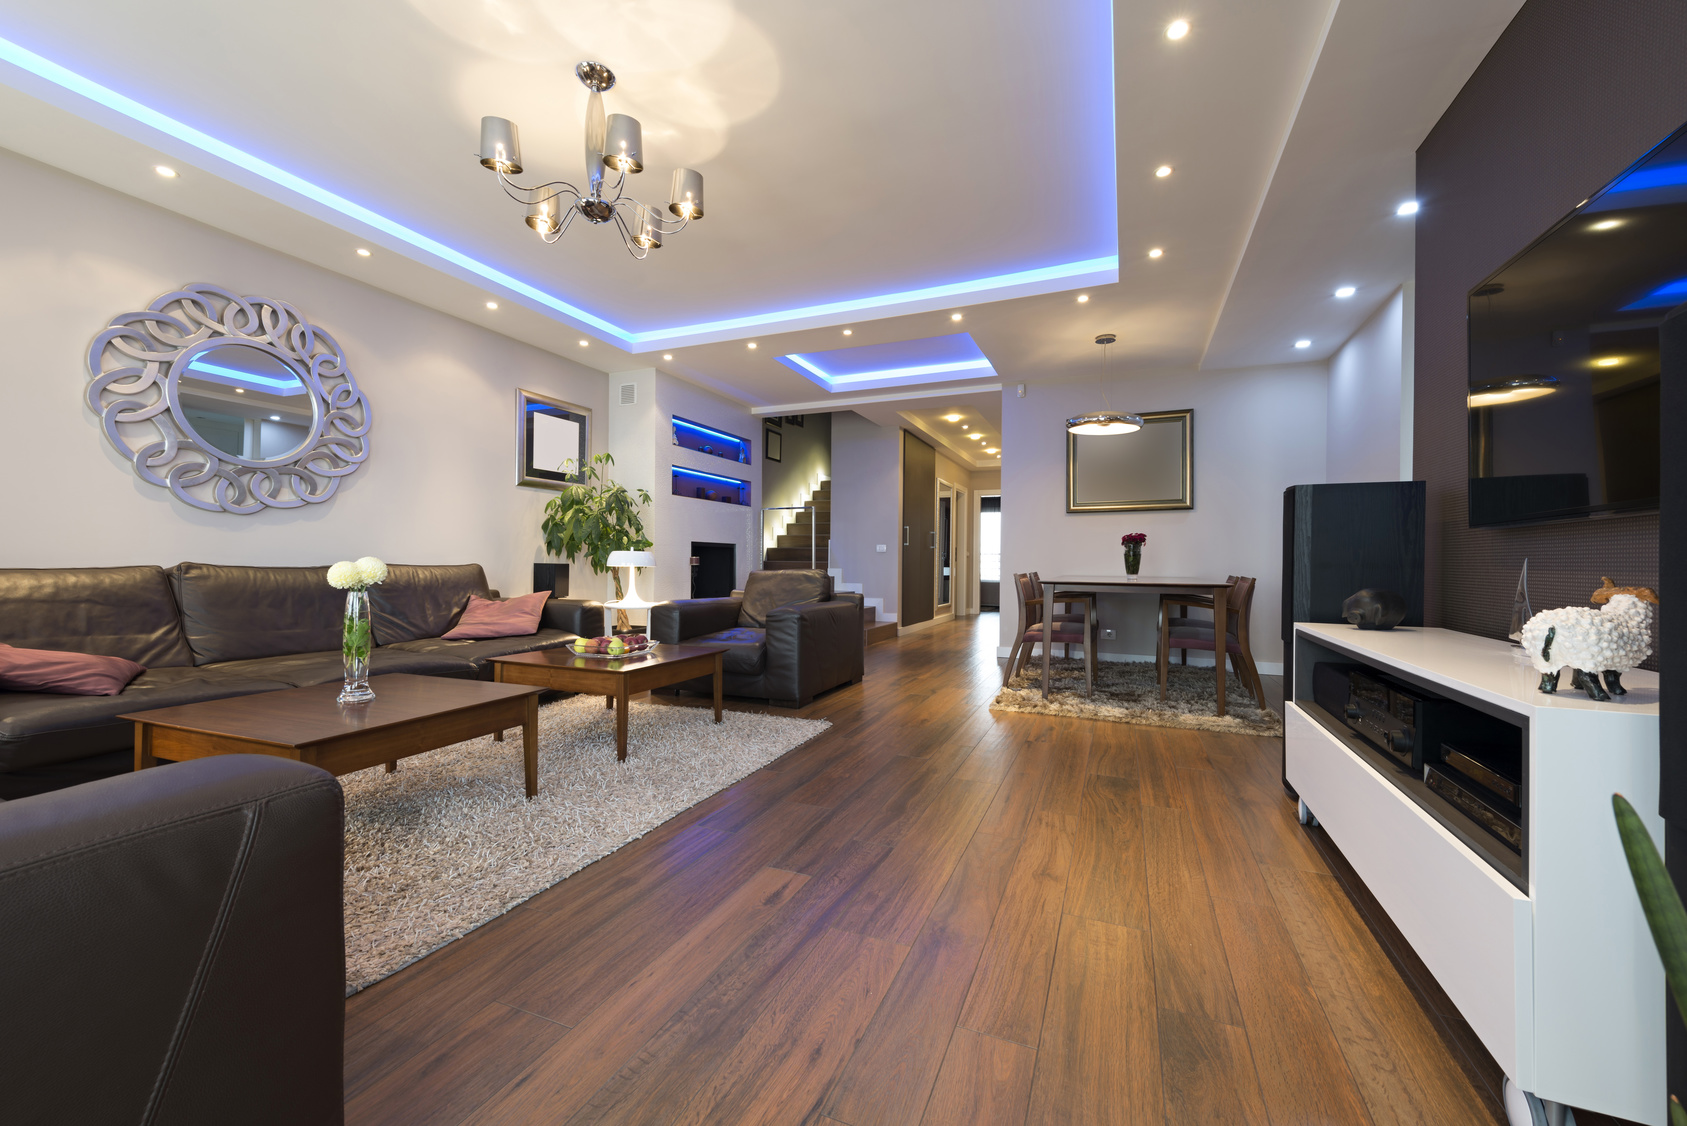 Luxury specious living room interior with modern LED lighting